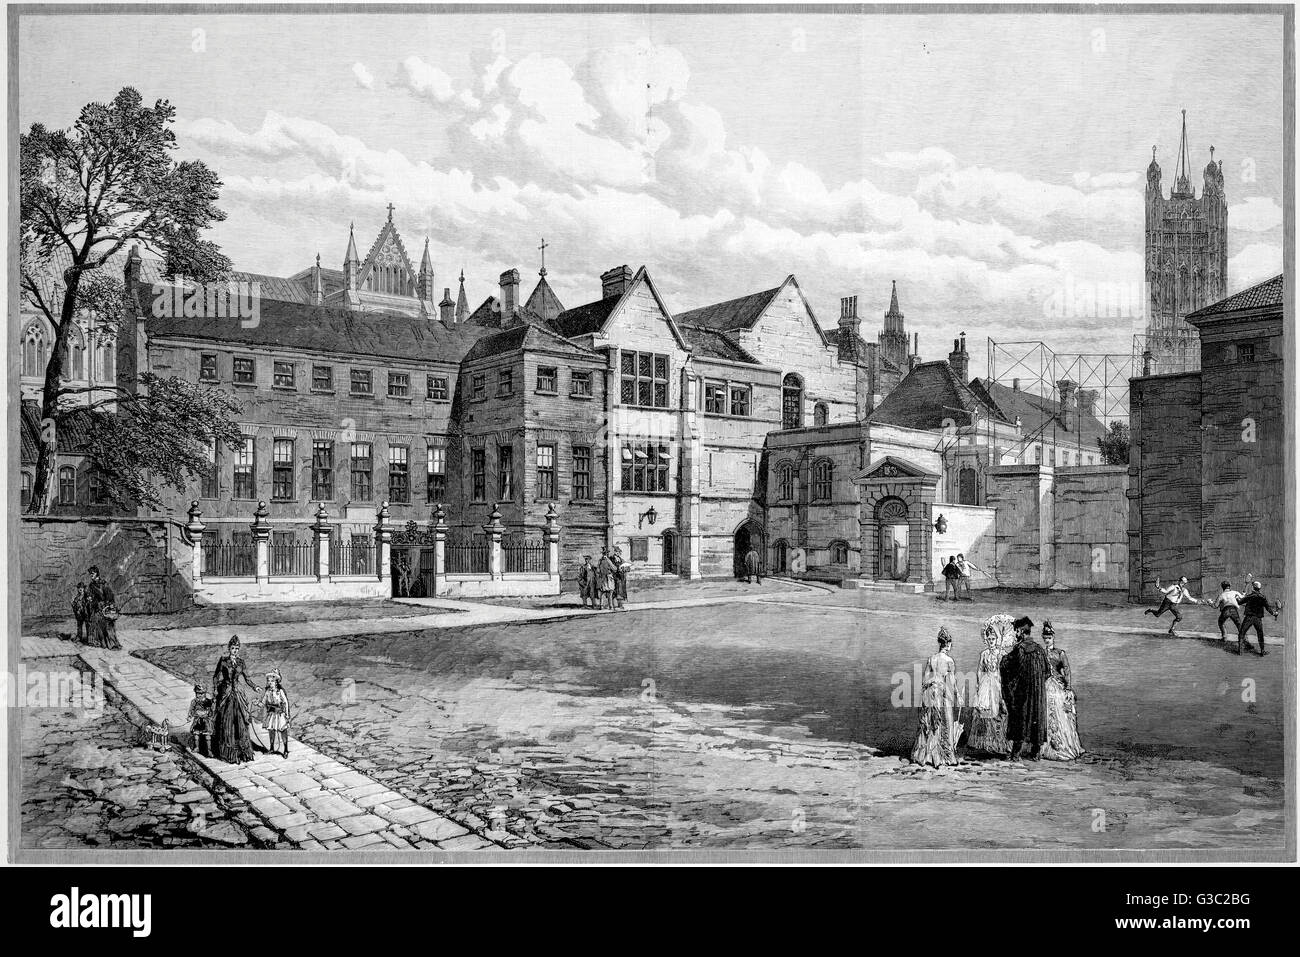 Little Dean's Yard at Westminster School (The Royal College of St. Peter in Westminster), Westminster, London, - Stock Image